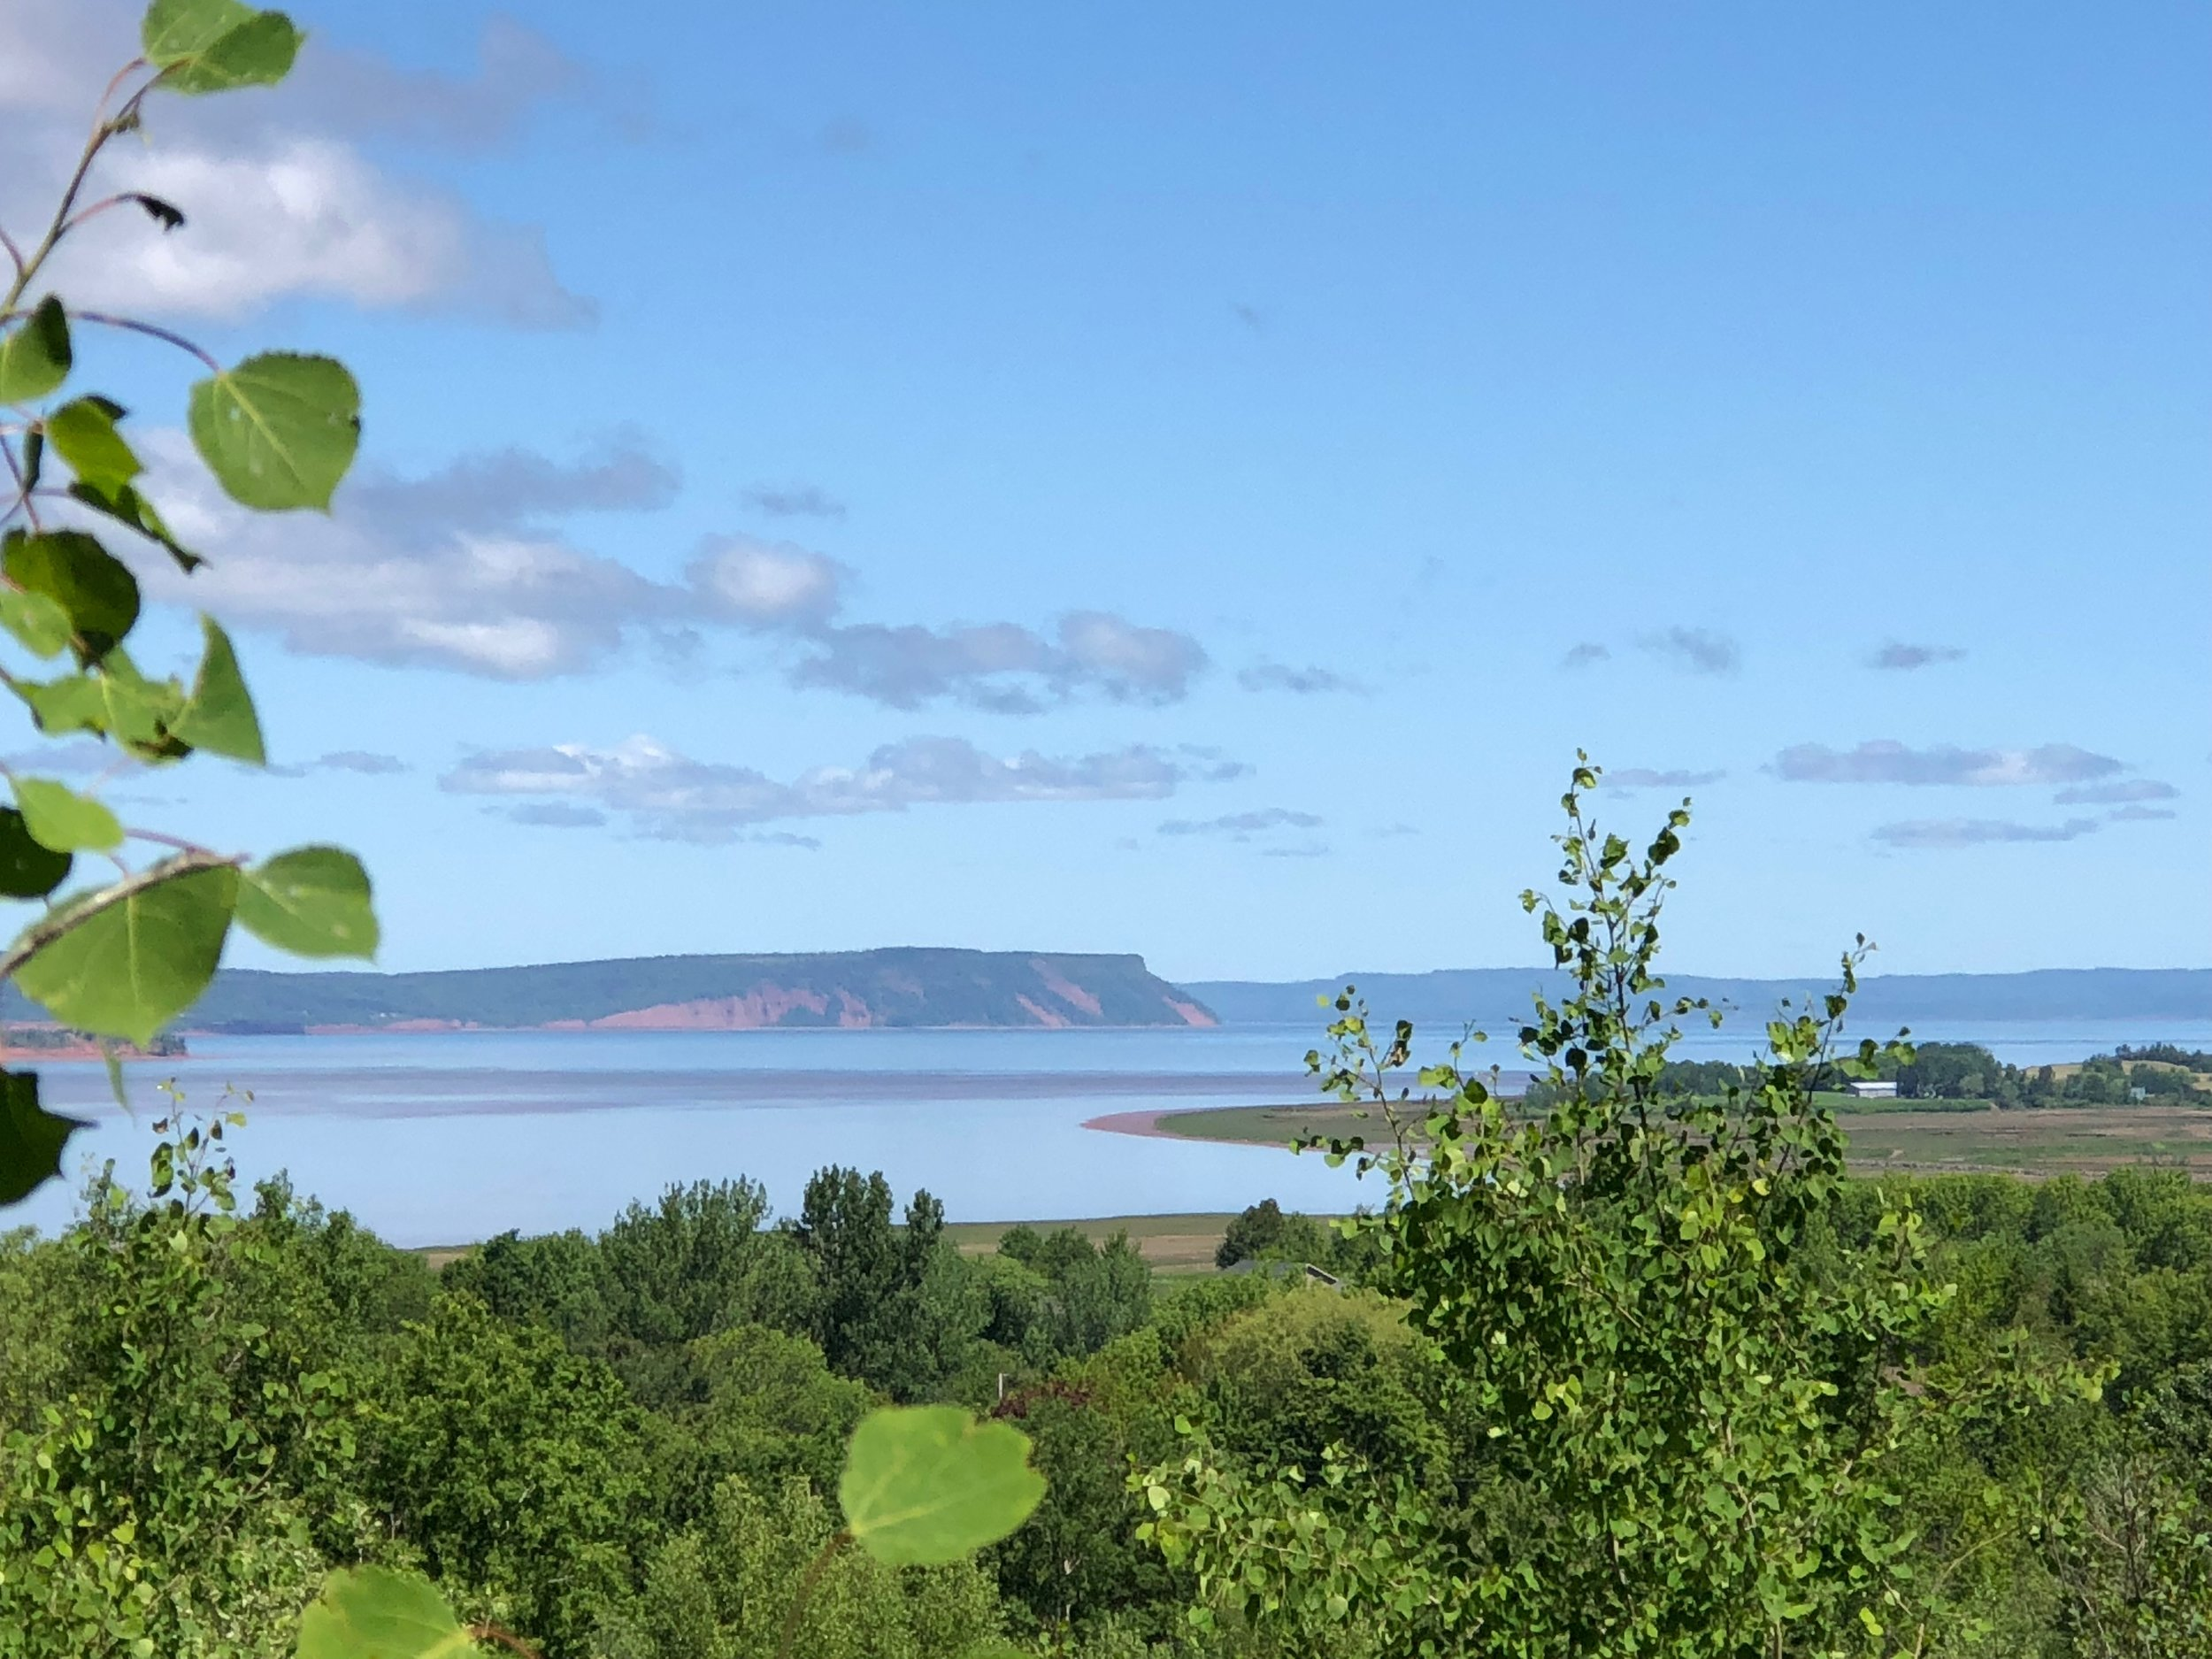 The view of Wolfville Harbour and Cape Blomidon from Reservoir Park in Wolfville.